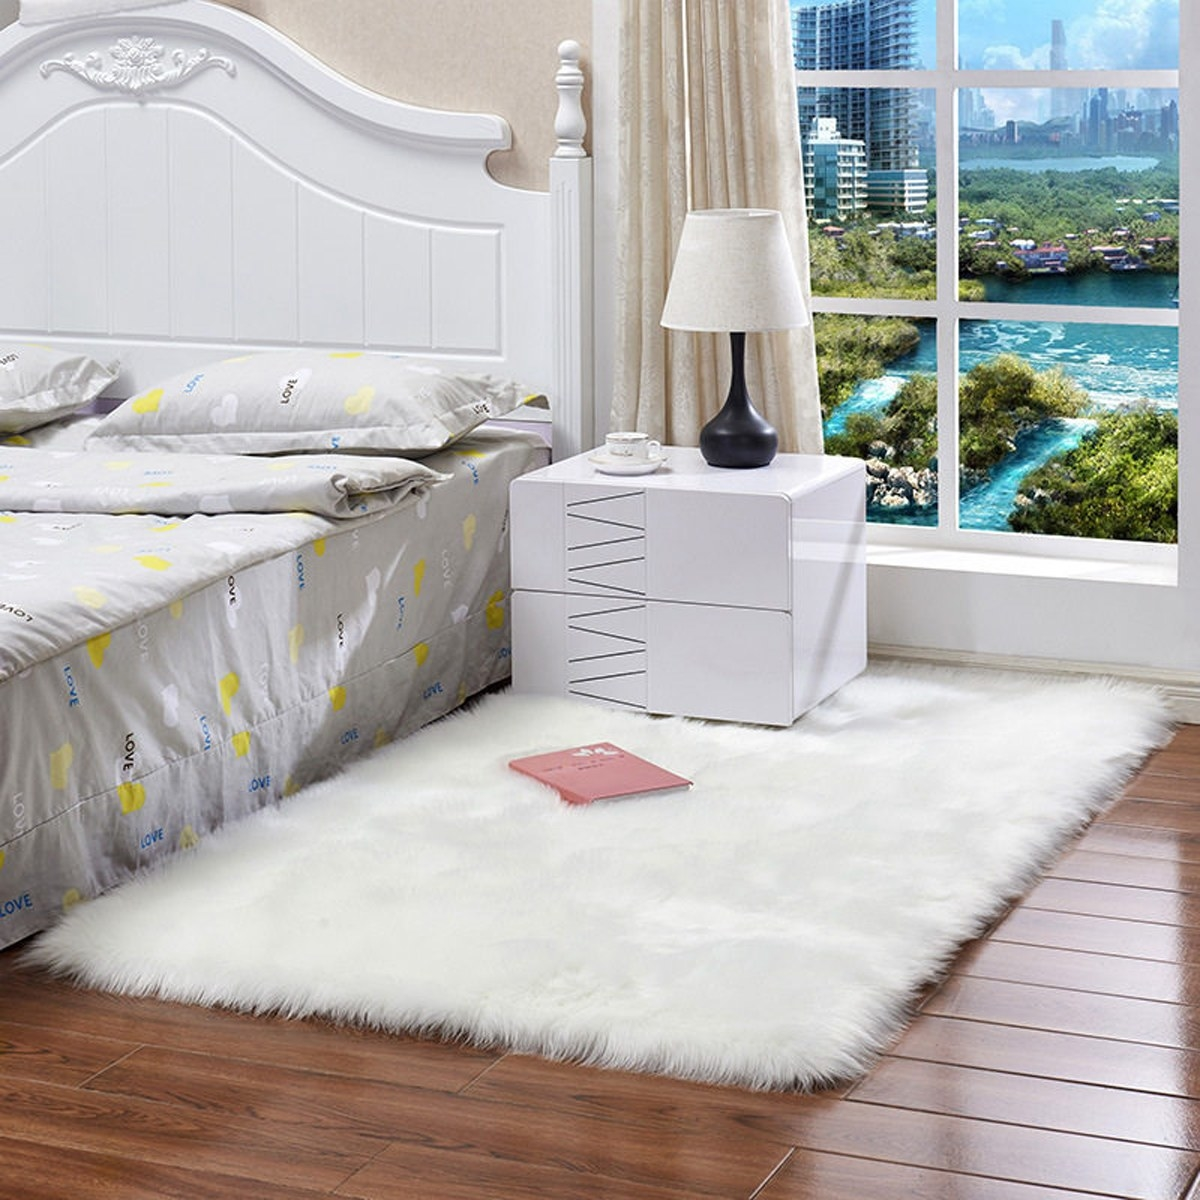 The rug placed beside the bed